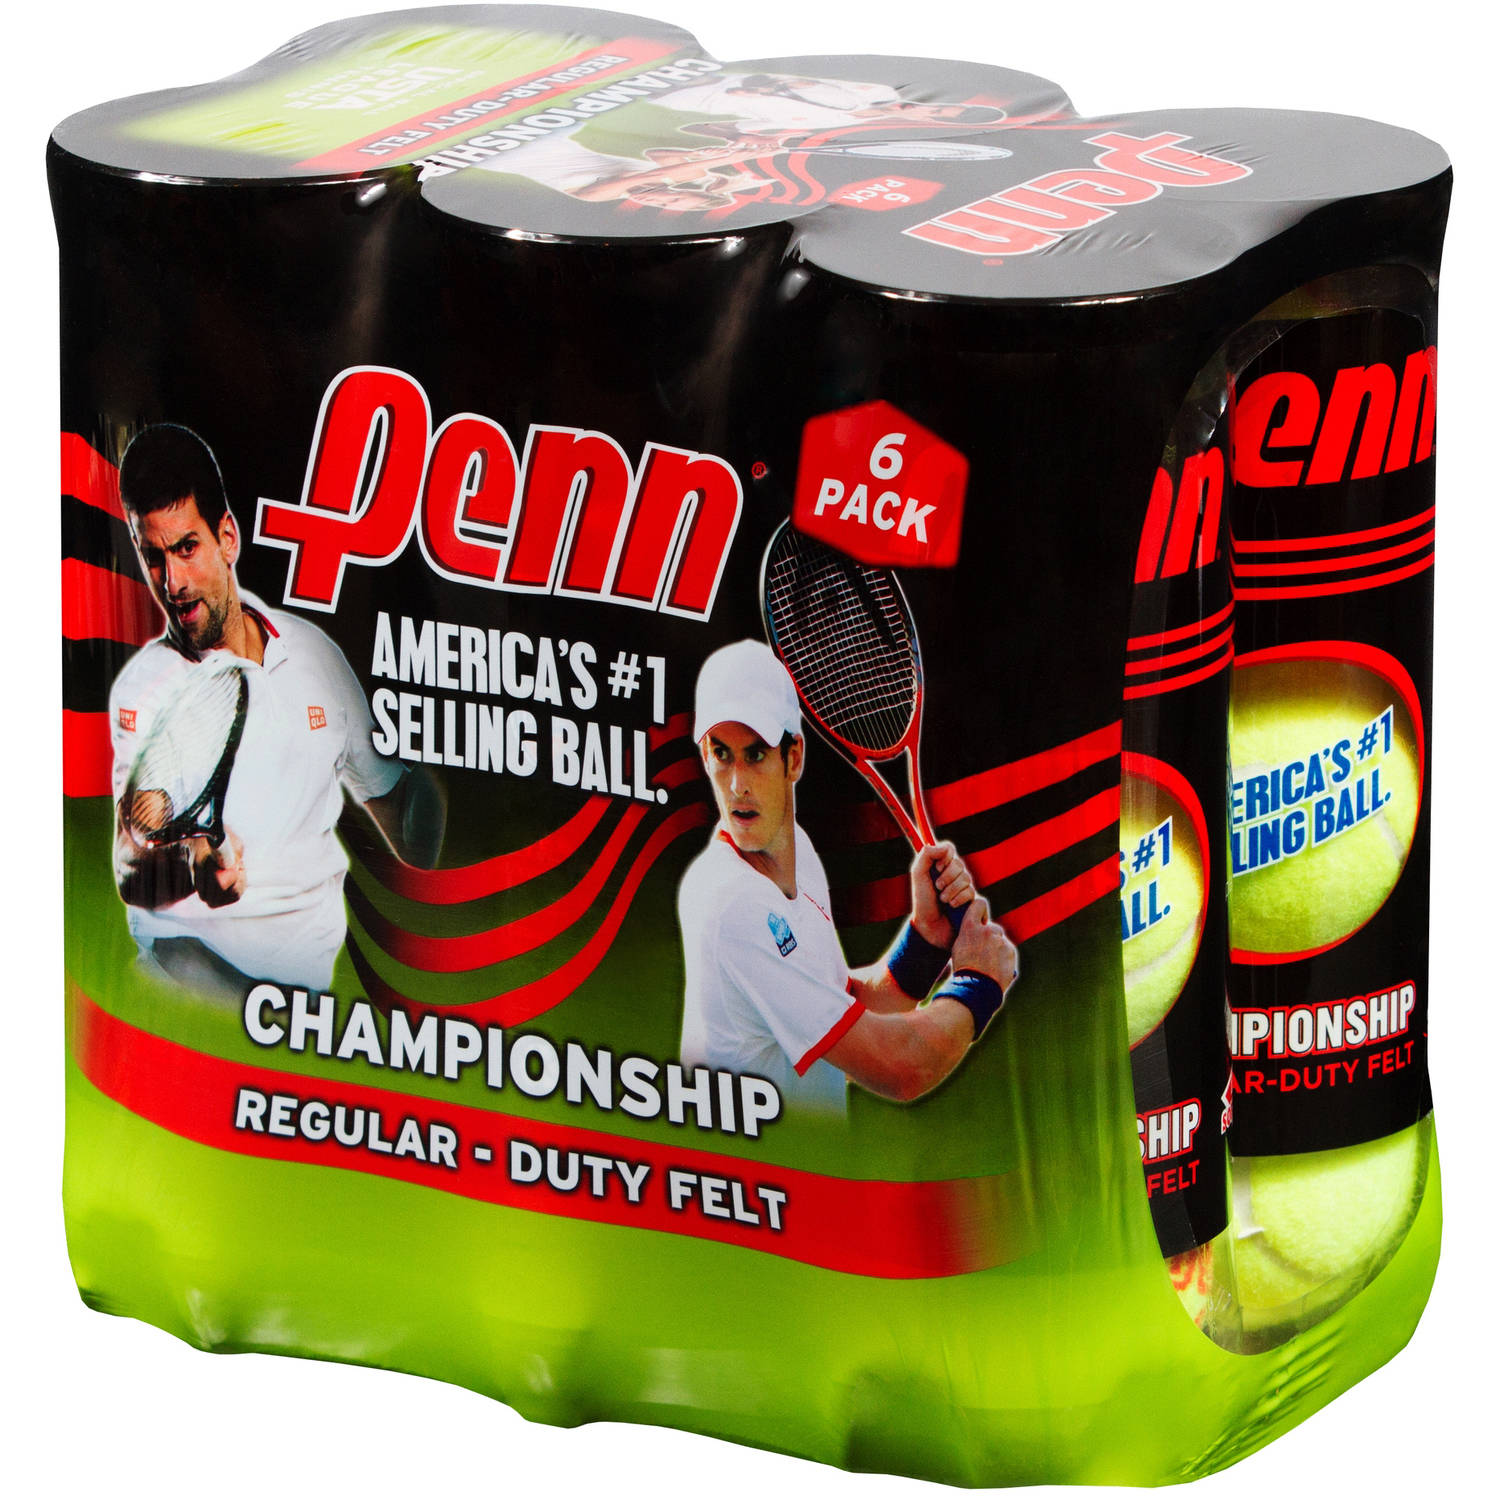 Penn Championship Regular Duty Tennis Ball Pack (6 Cans, 18 Balls)